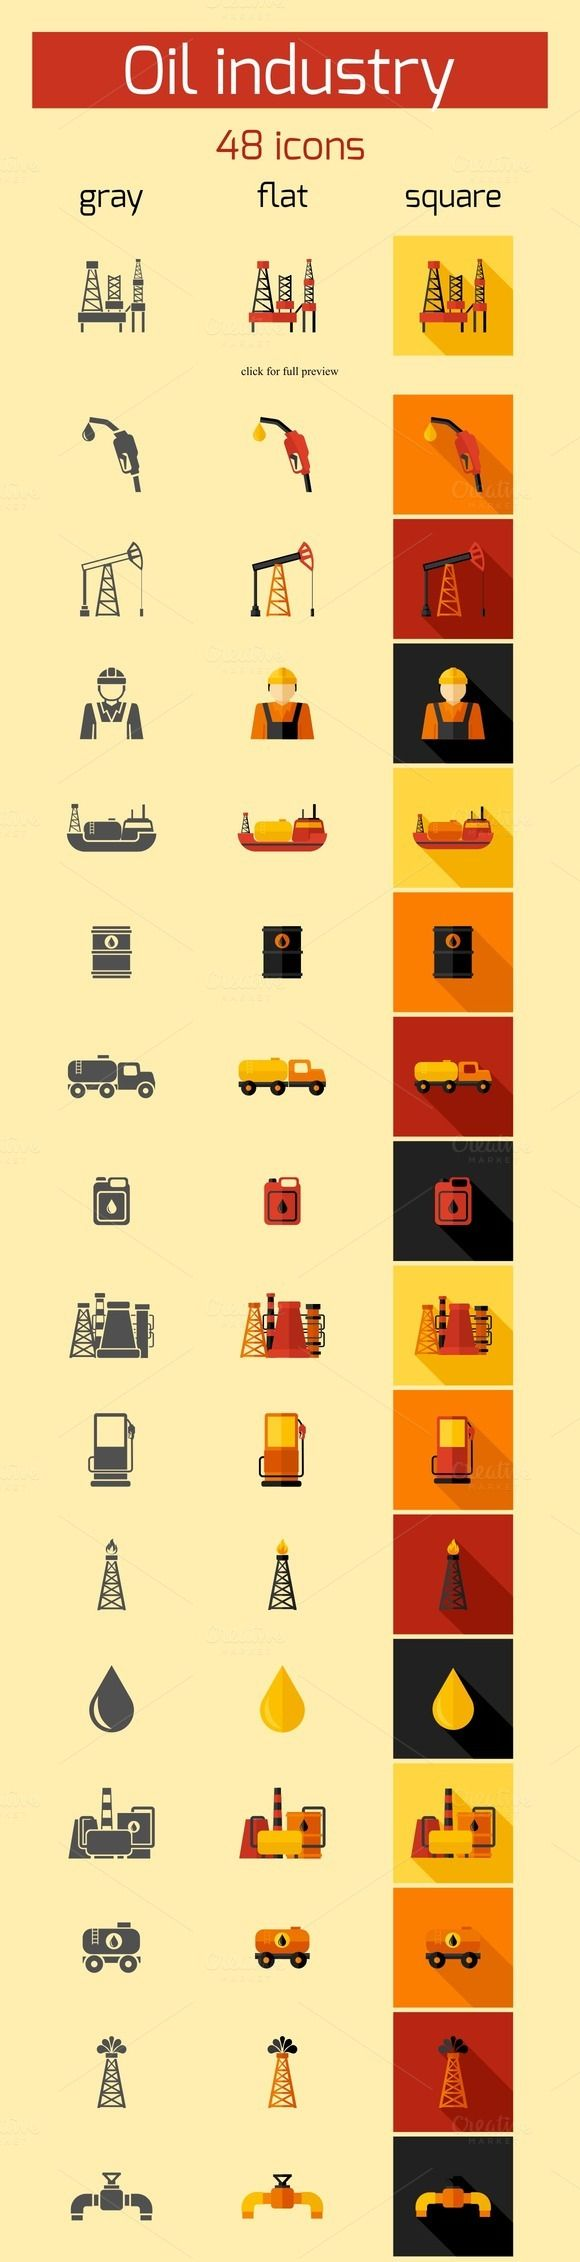 Check out 48 Oil Industry vector icons by Macrovector on Creative Market